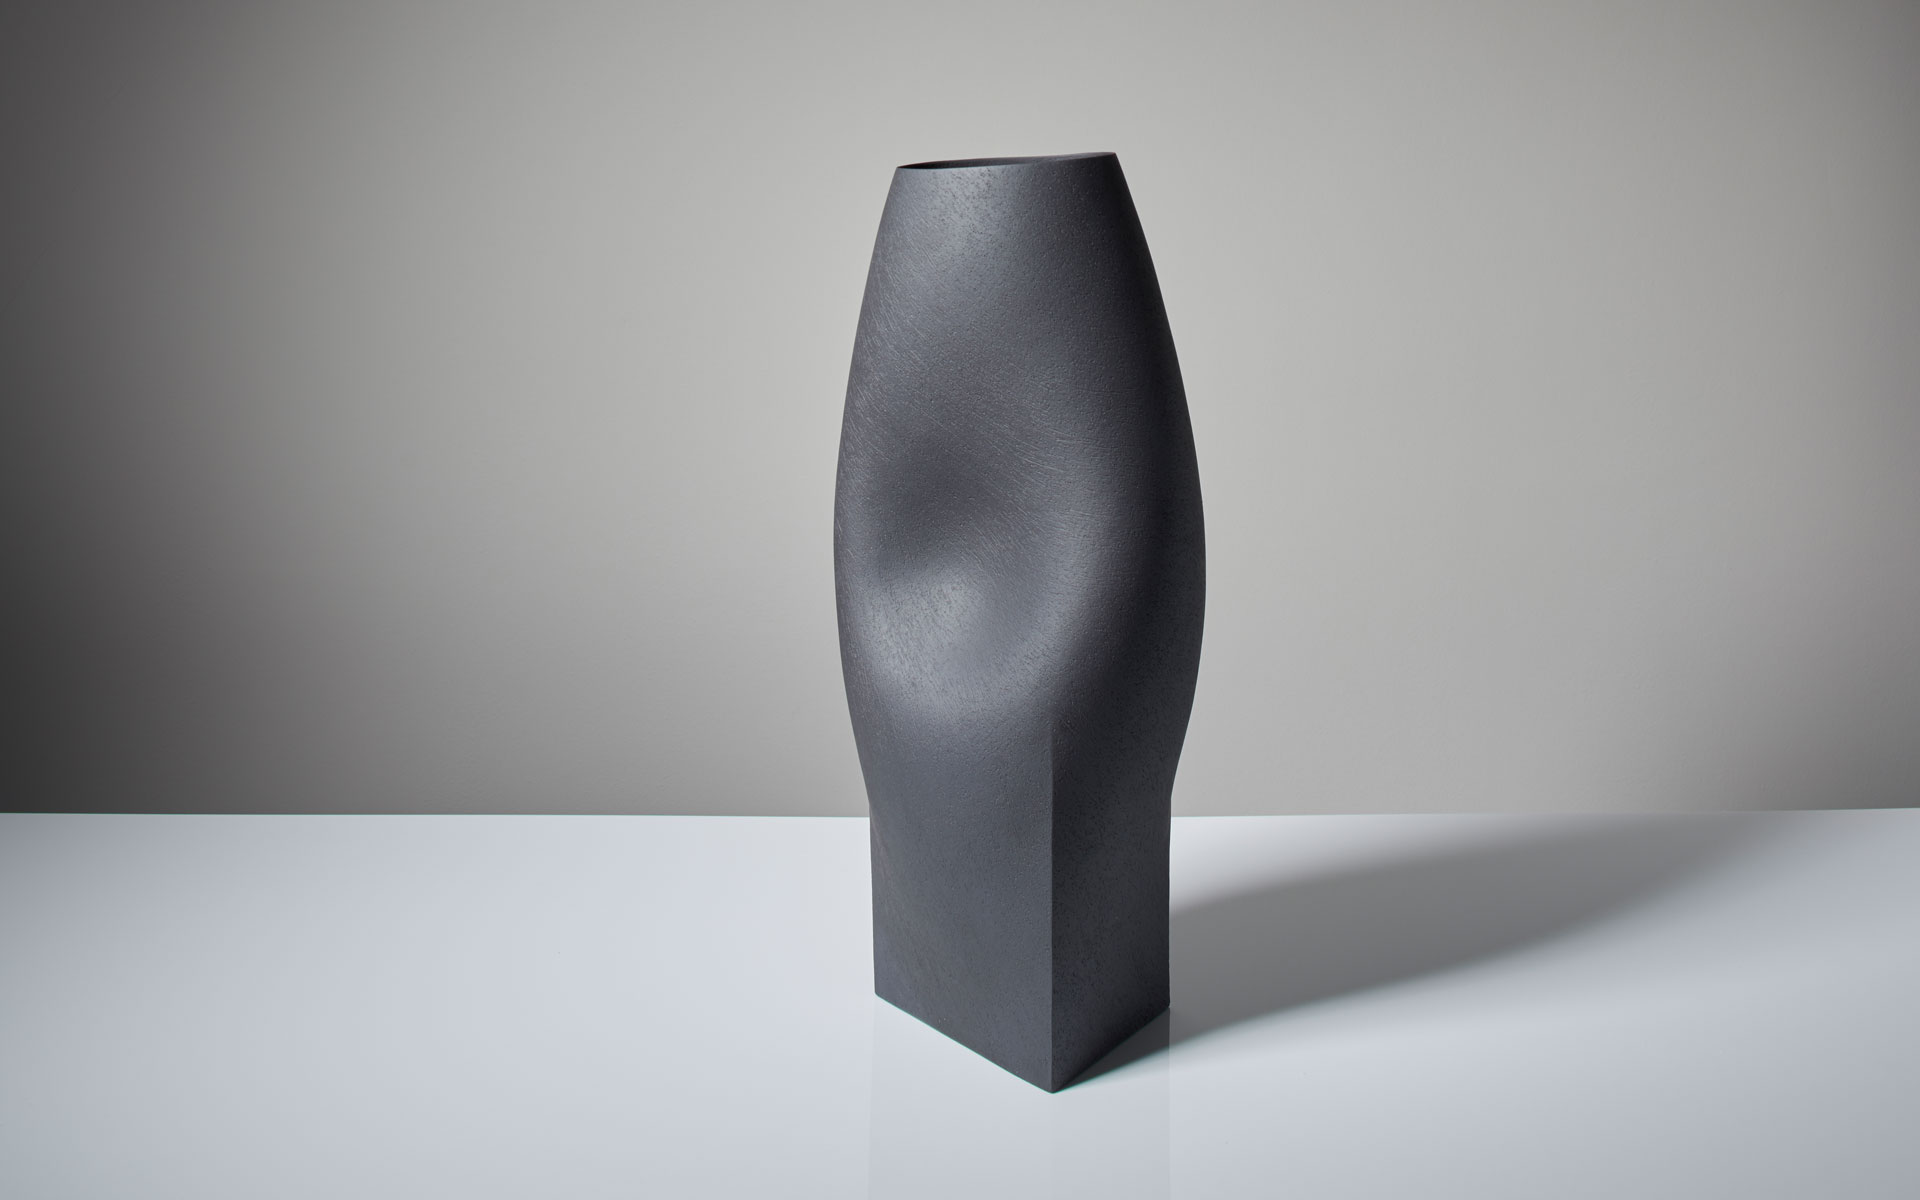 Black Vessel with triangular base